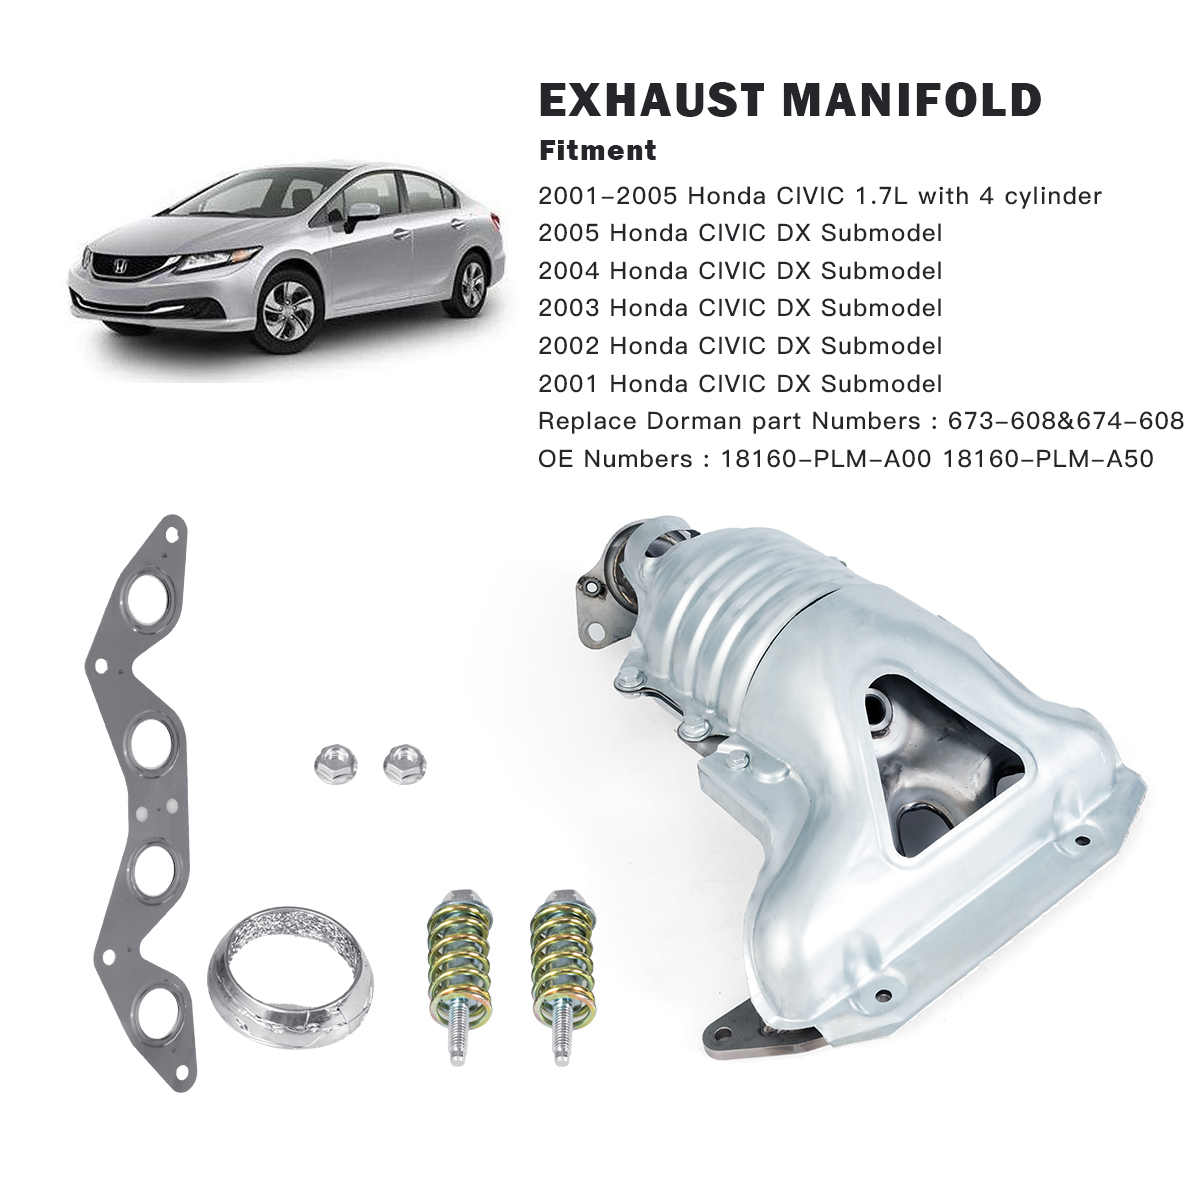 costway exhaust manifold set with integrated catalytic converter fit for honda civic